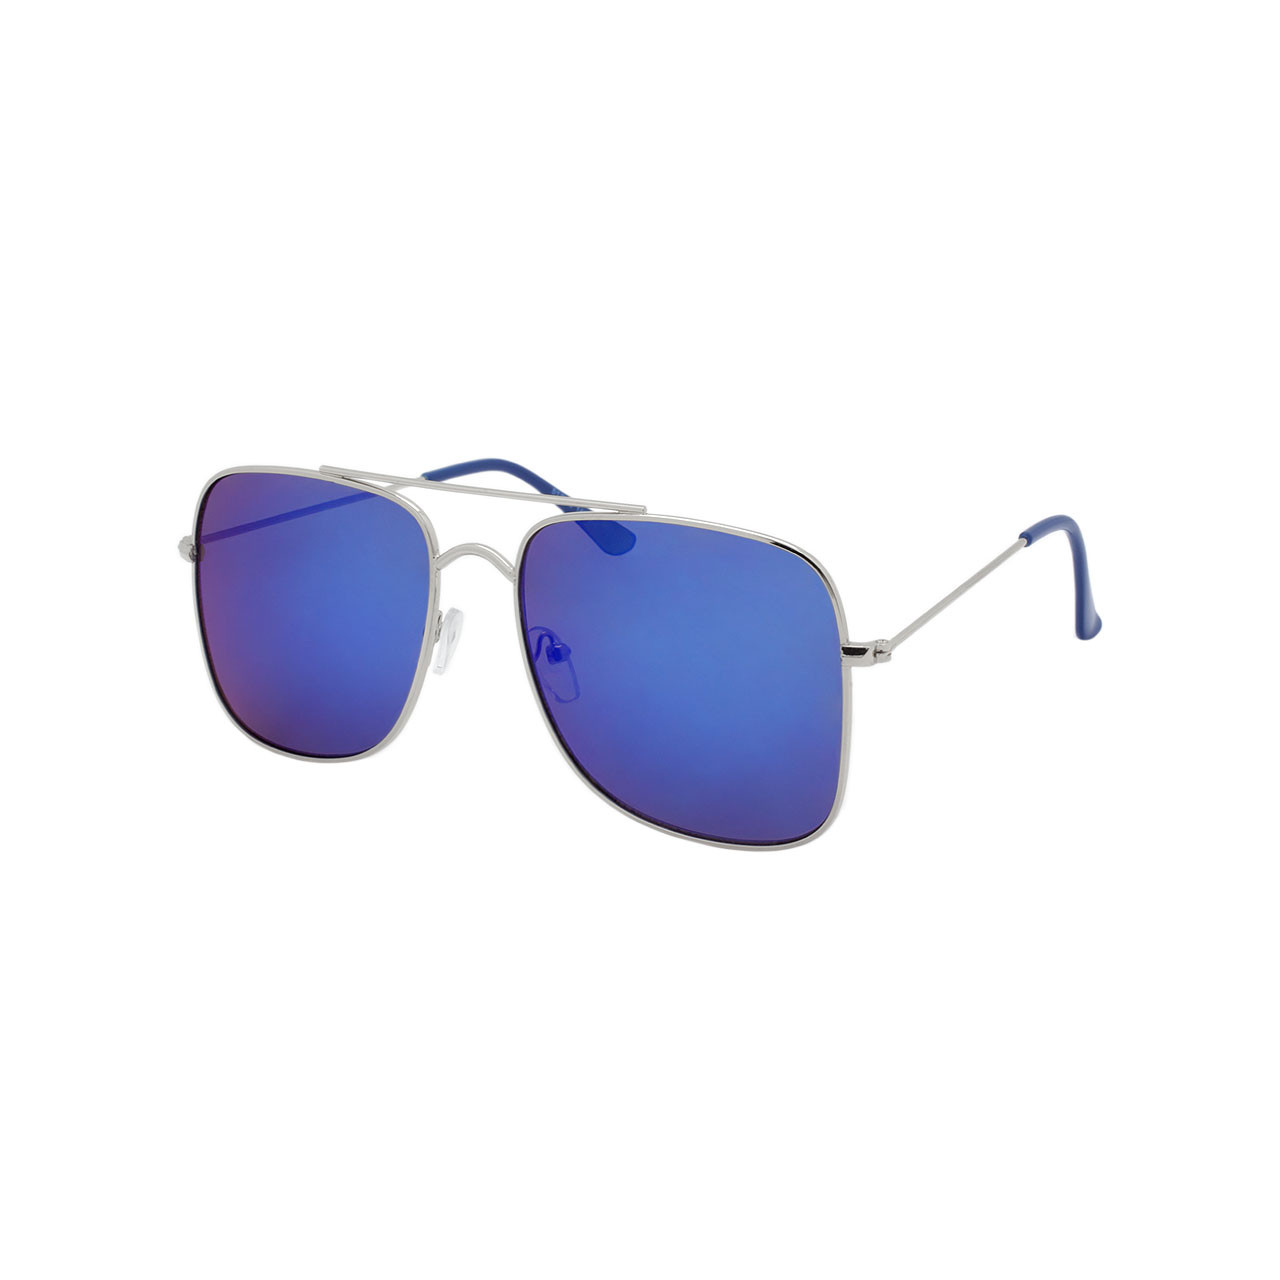 2da97498b596c Wholesale Assorted Colors Metal Aviator Sunglasses Bulk